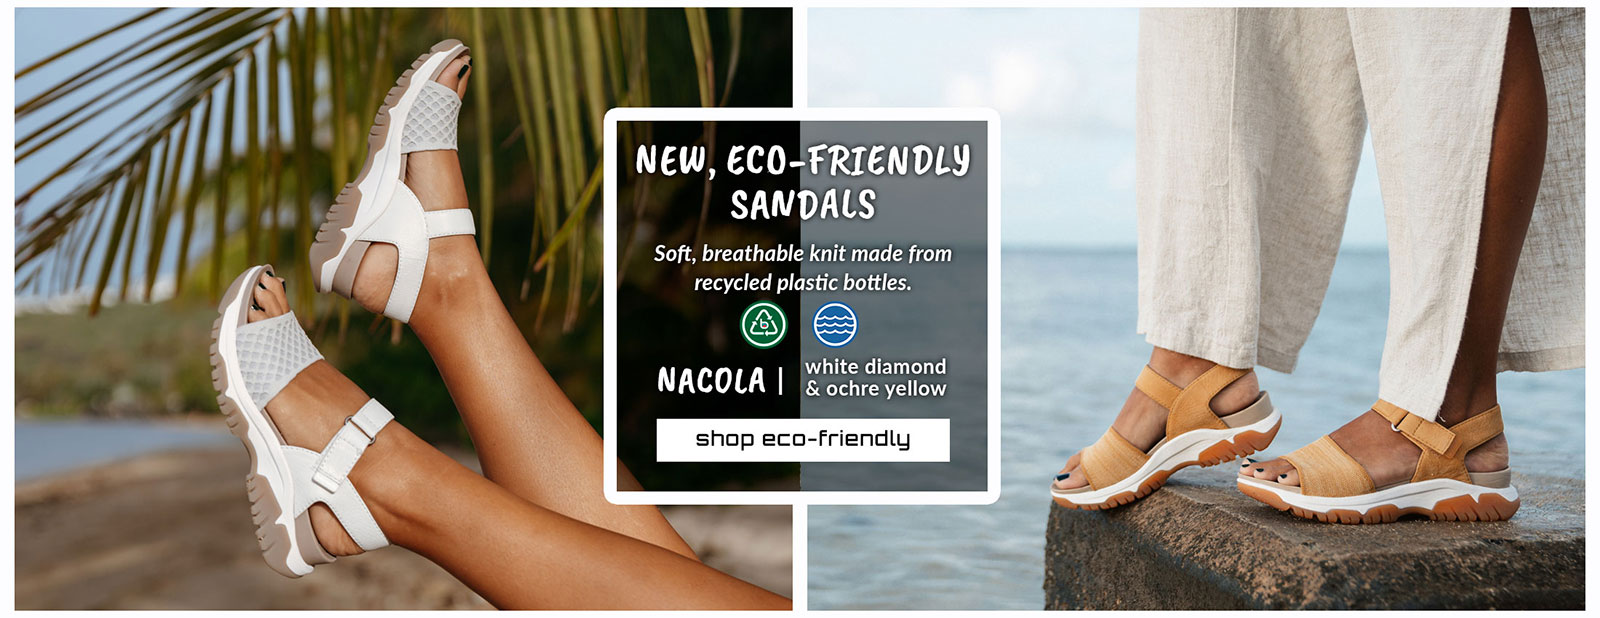 New, eco-friendly sandals. Soft, breathable knit made from recycled plastic bottles. Featured styles: eco-friendly & water-friendly Nacola sandal in White Diamond, Nacola sandal in Ochre yellow. Shop eco-friendly.